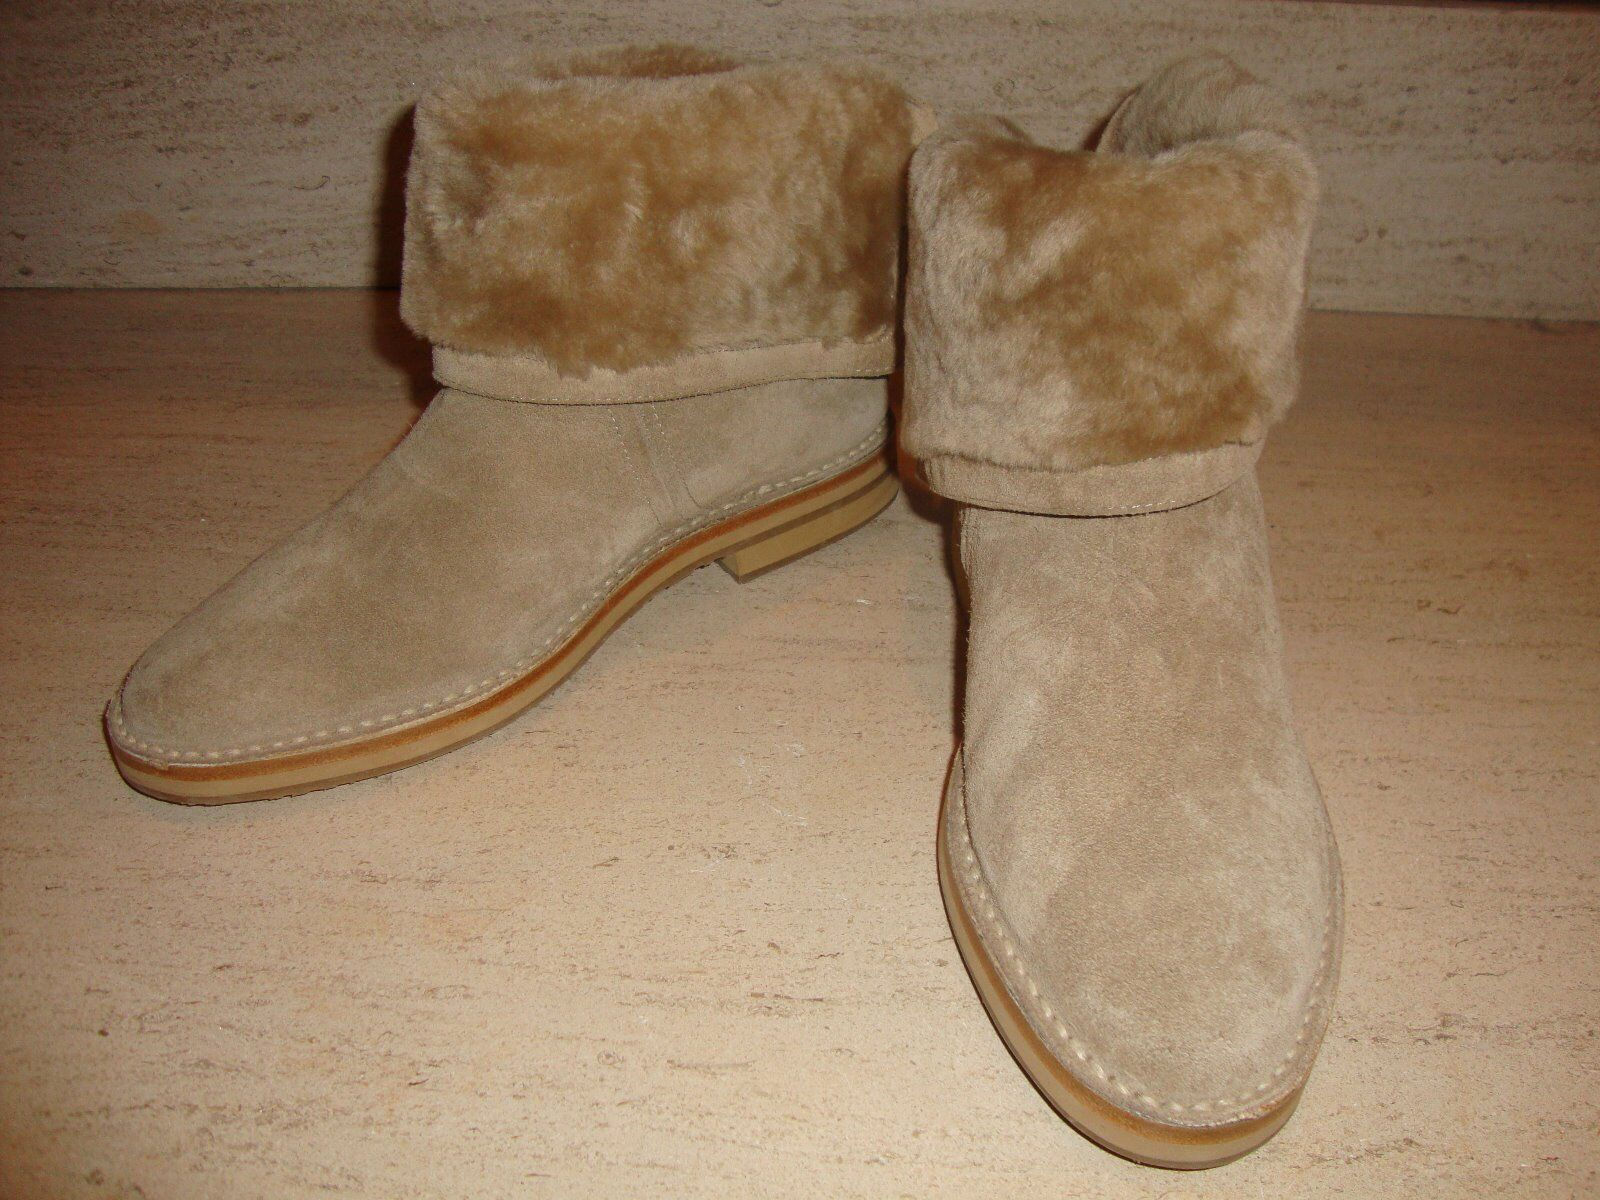 GORGEOUS NEW 1,395 SOLD OUT JIMMY CHOO TAUPE SUEDE FOLD OVER BOOTS